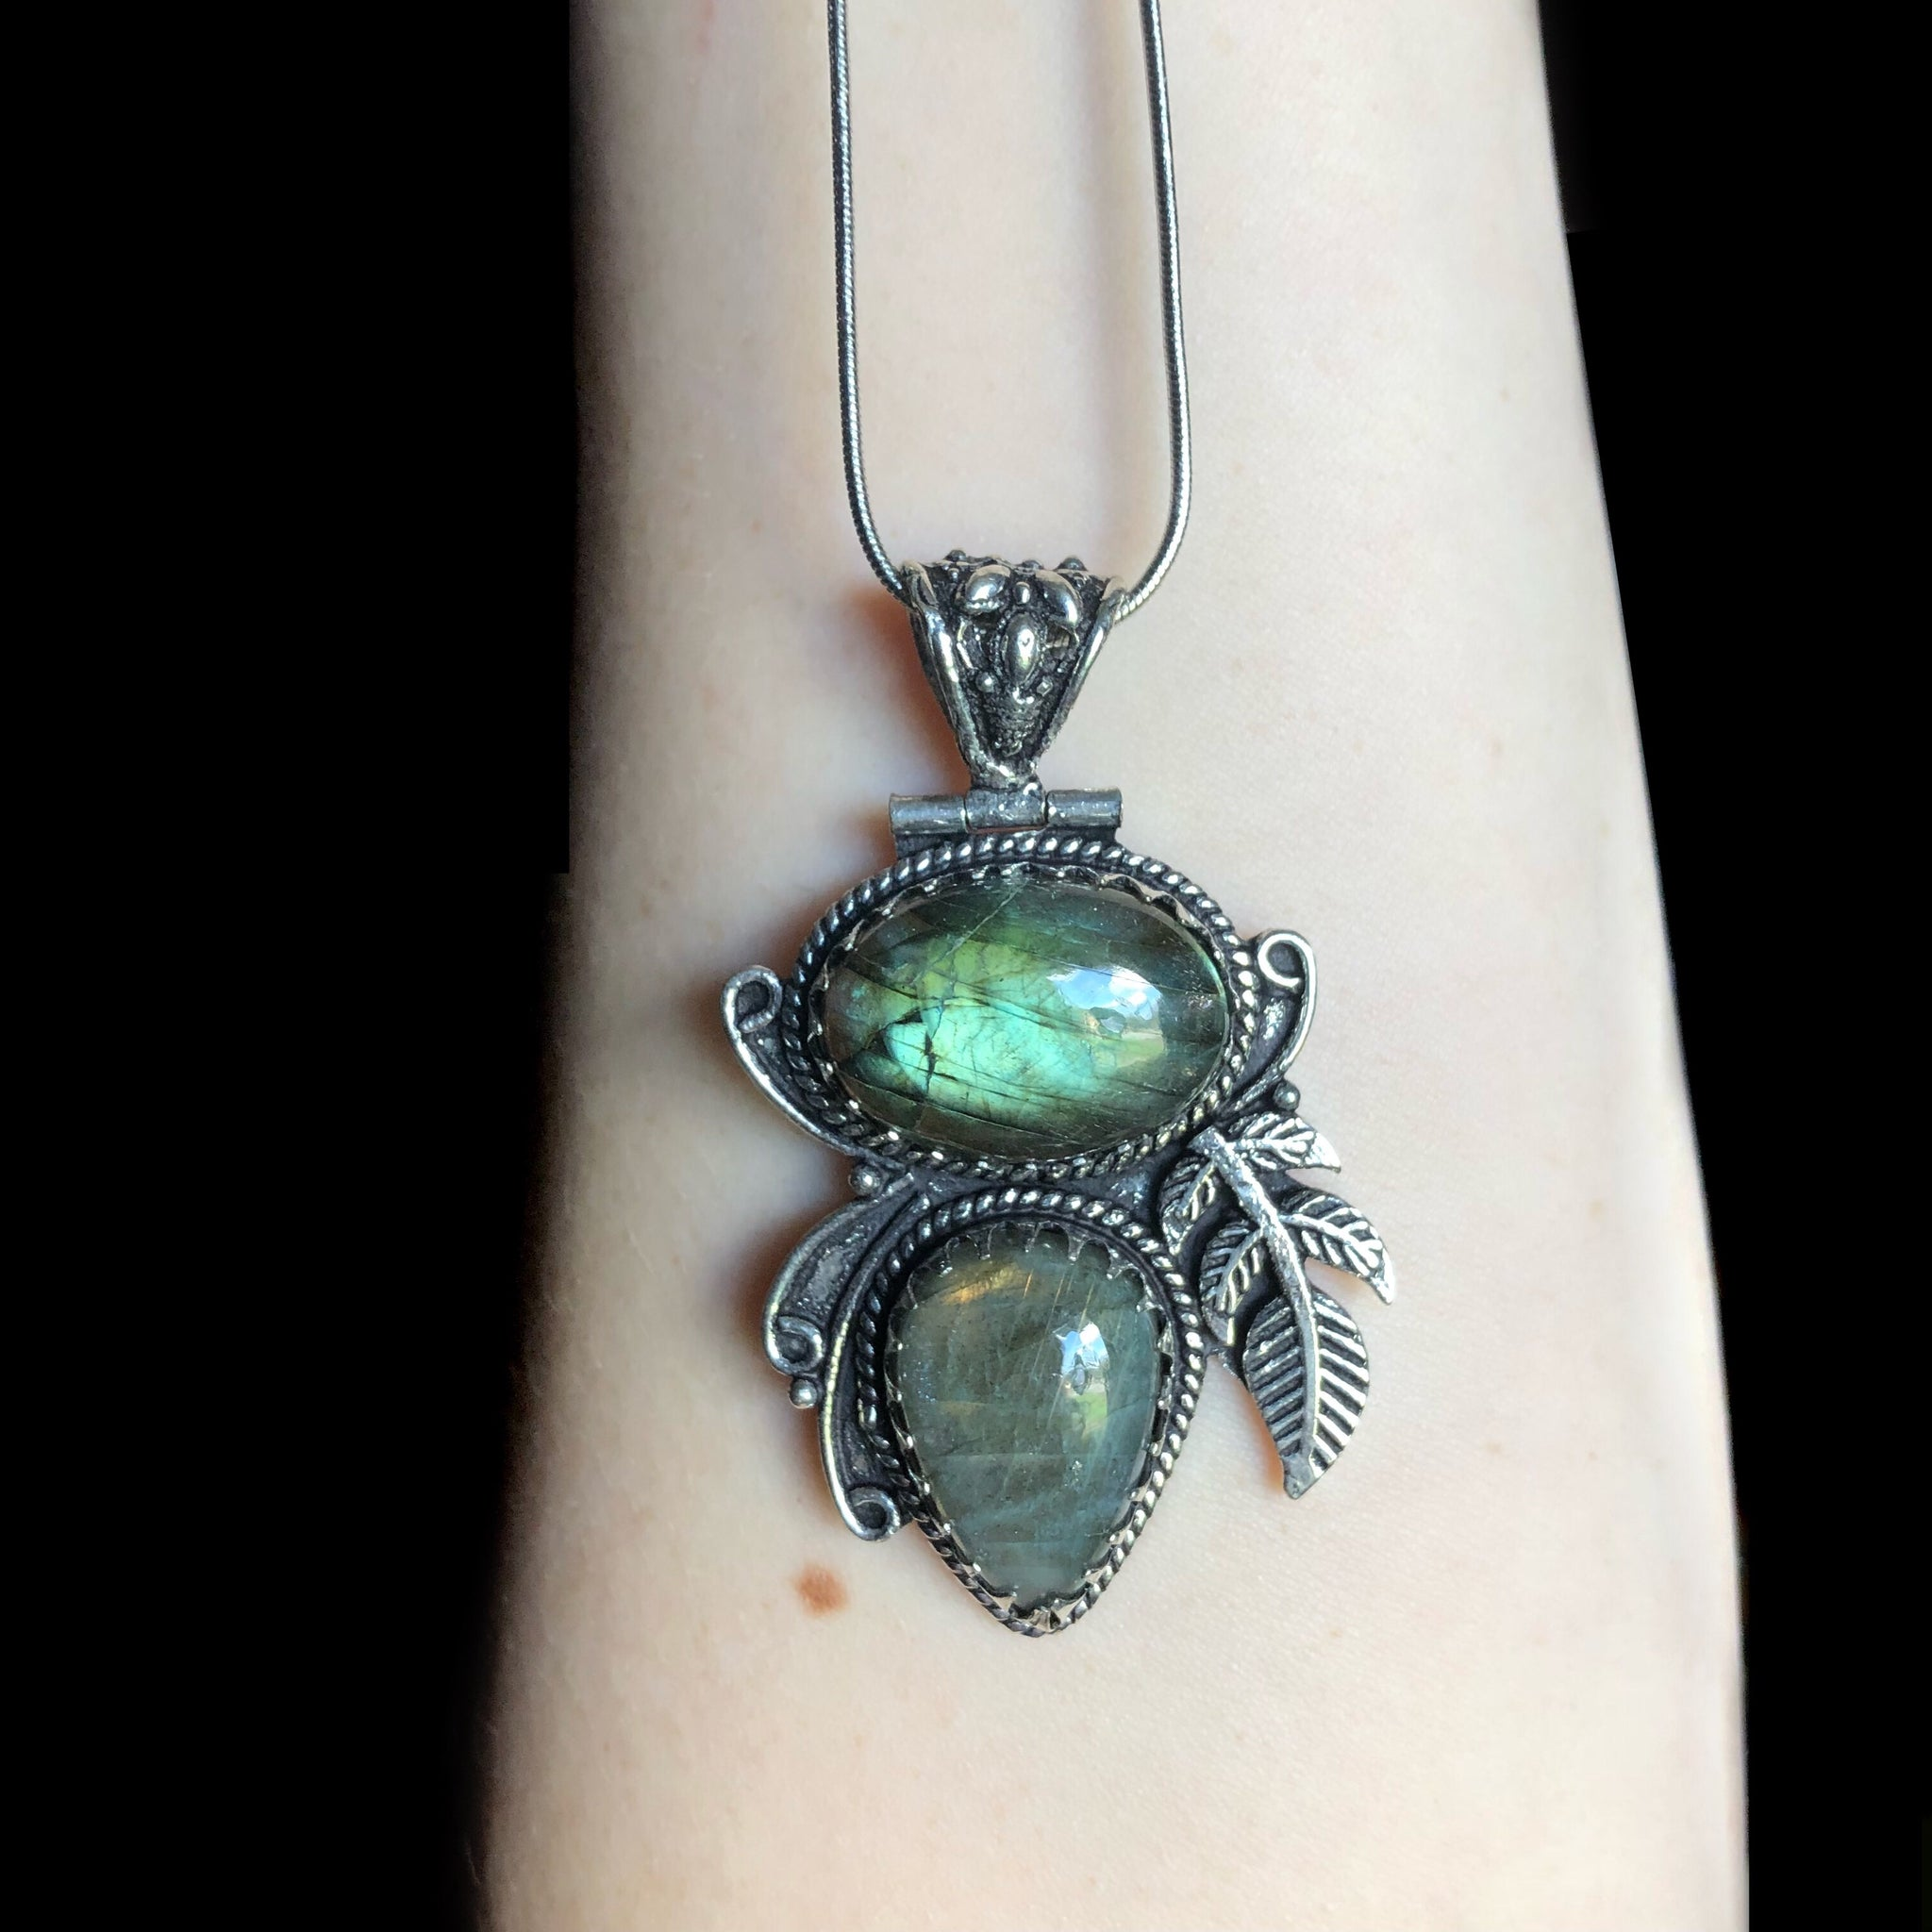 Green Labradorite Sterling Silver Necklace - The Whimsy Crystal Shop